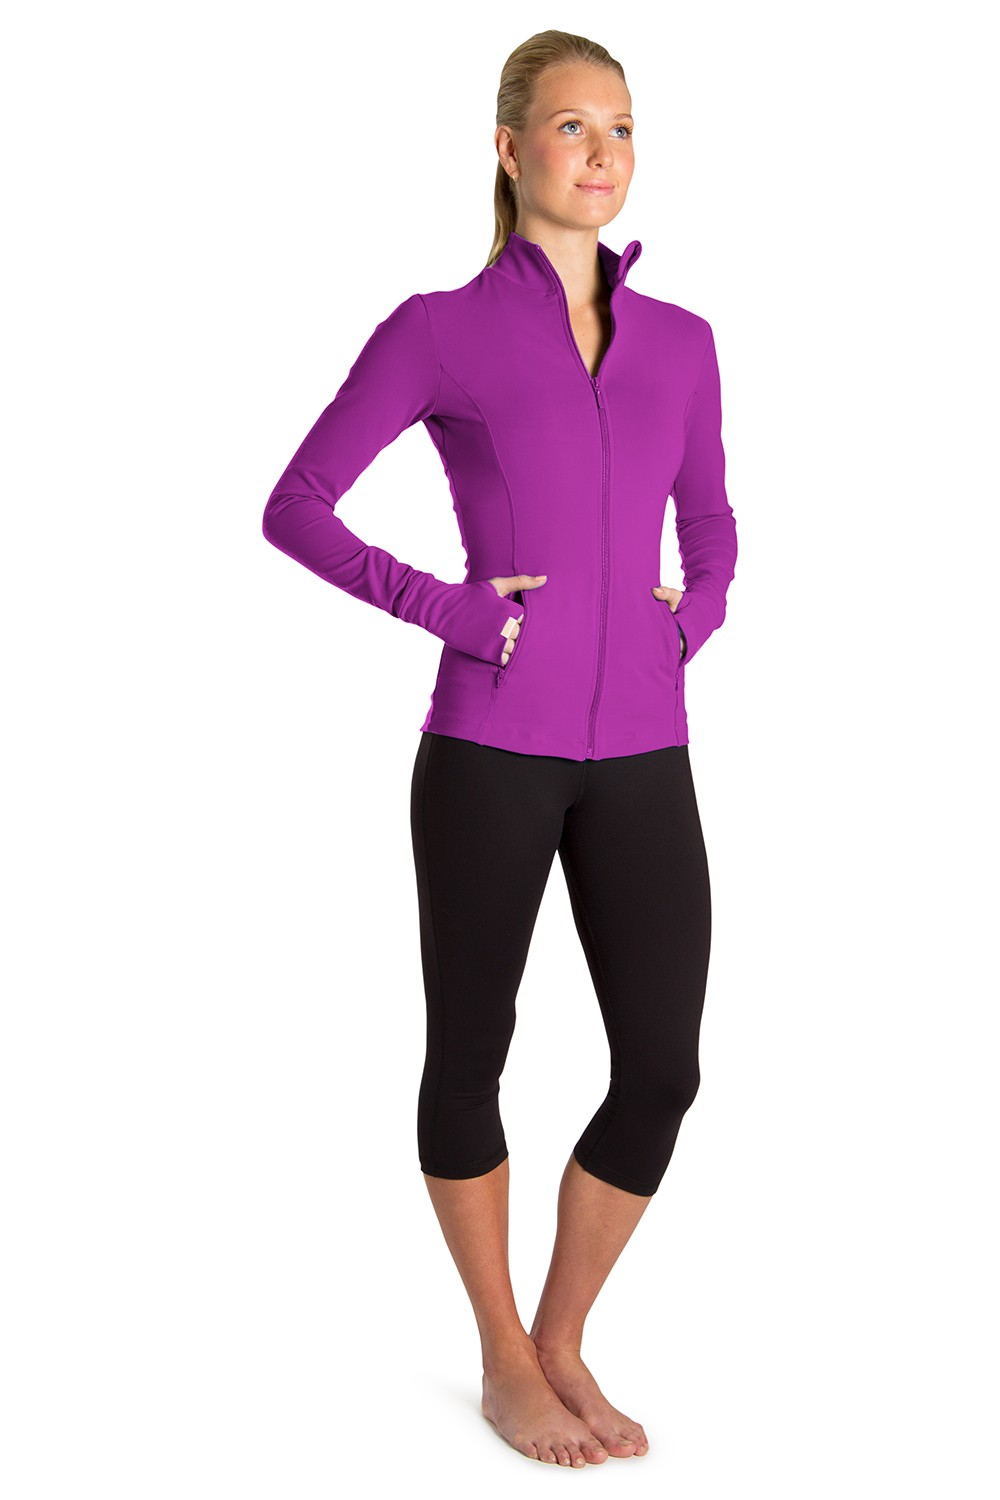 Supplex Zip Front Jacket Women's Tops